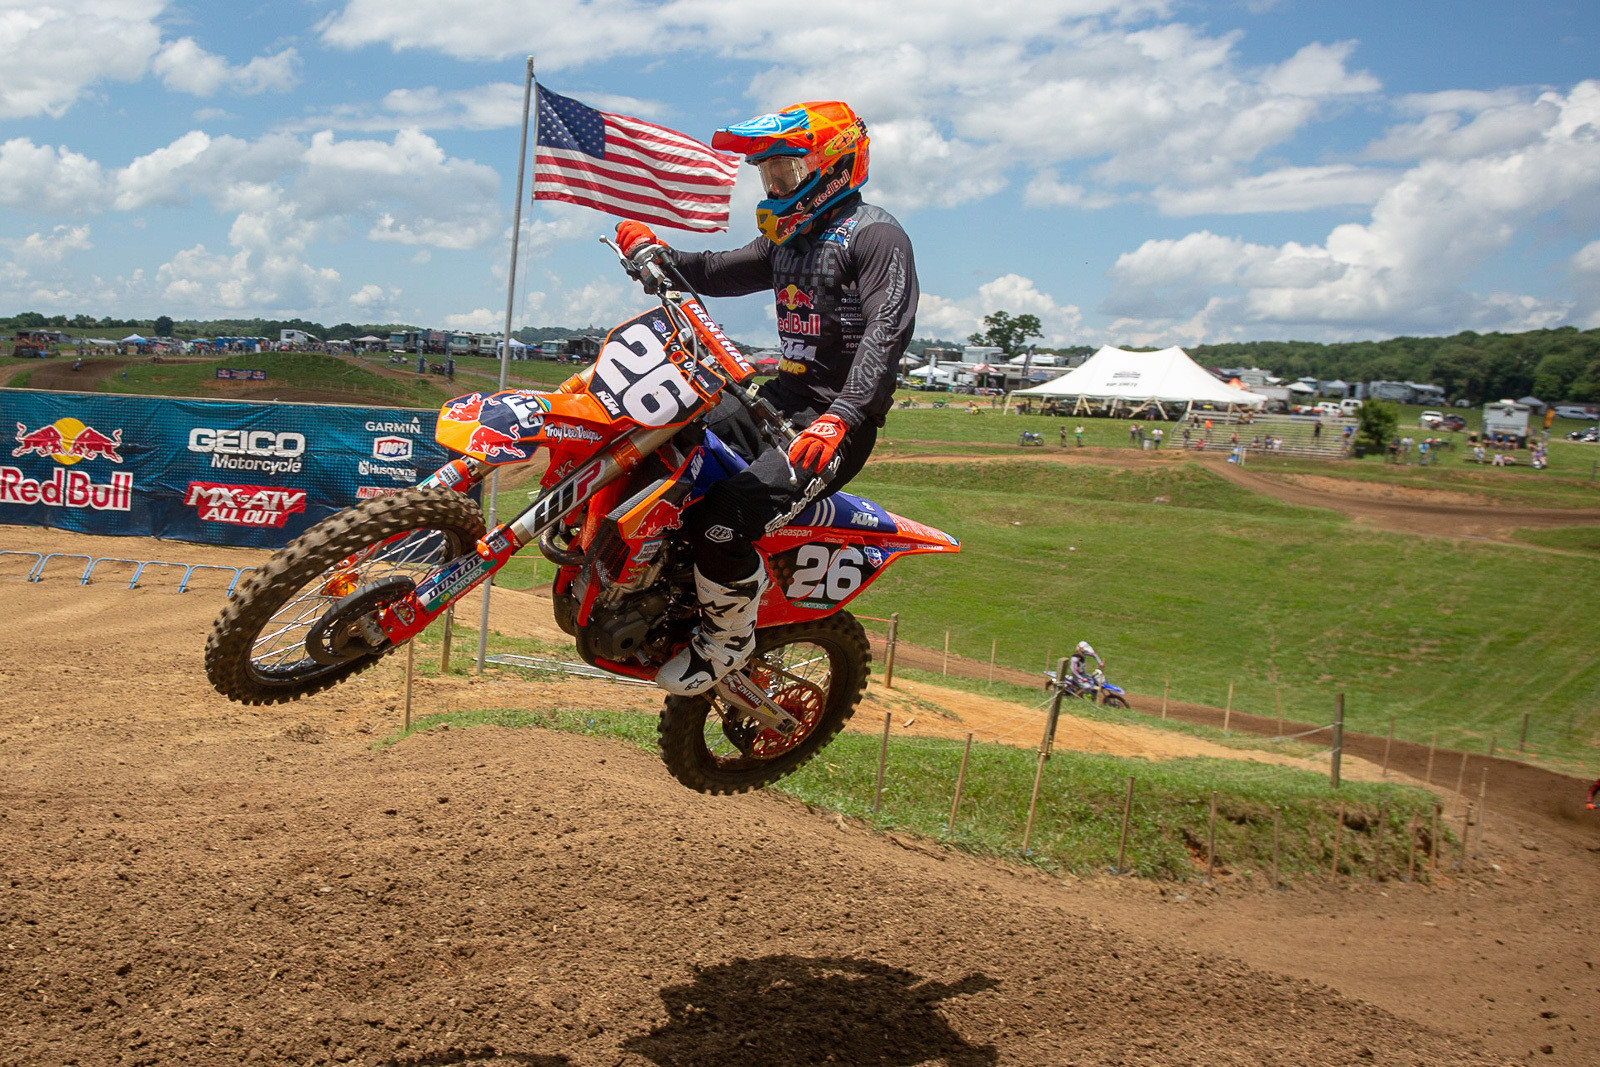 Alex Martin has been running some of P3's shroud extenders on his Troy Lee Designs/Red Bull/KTM.